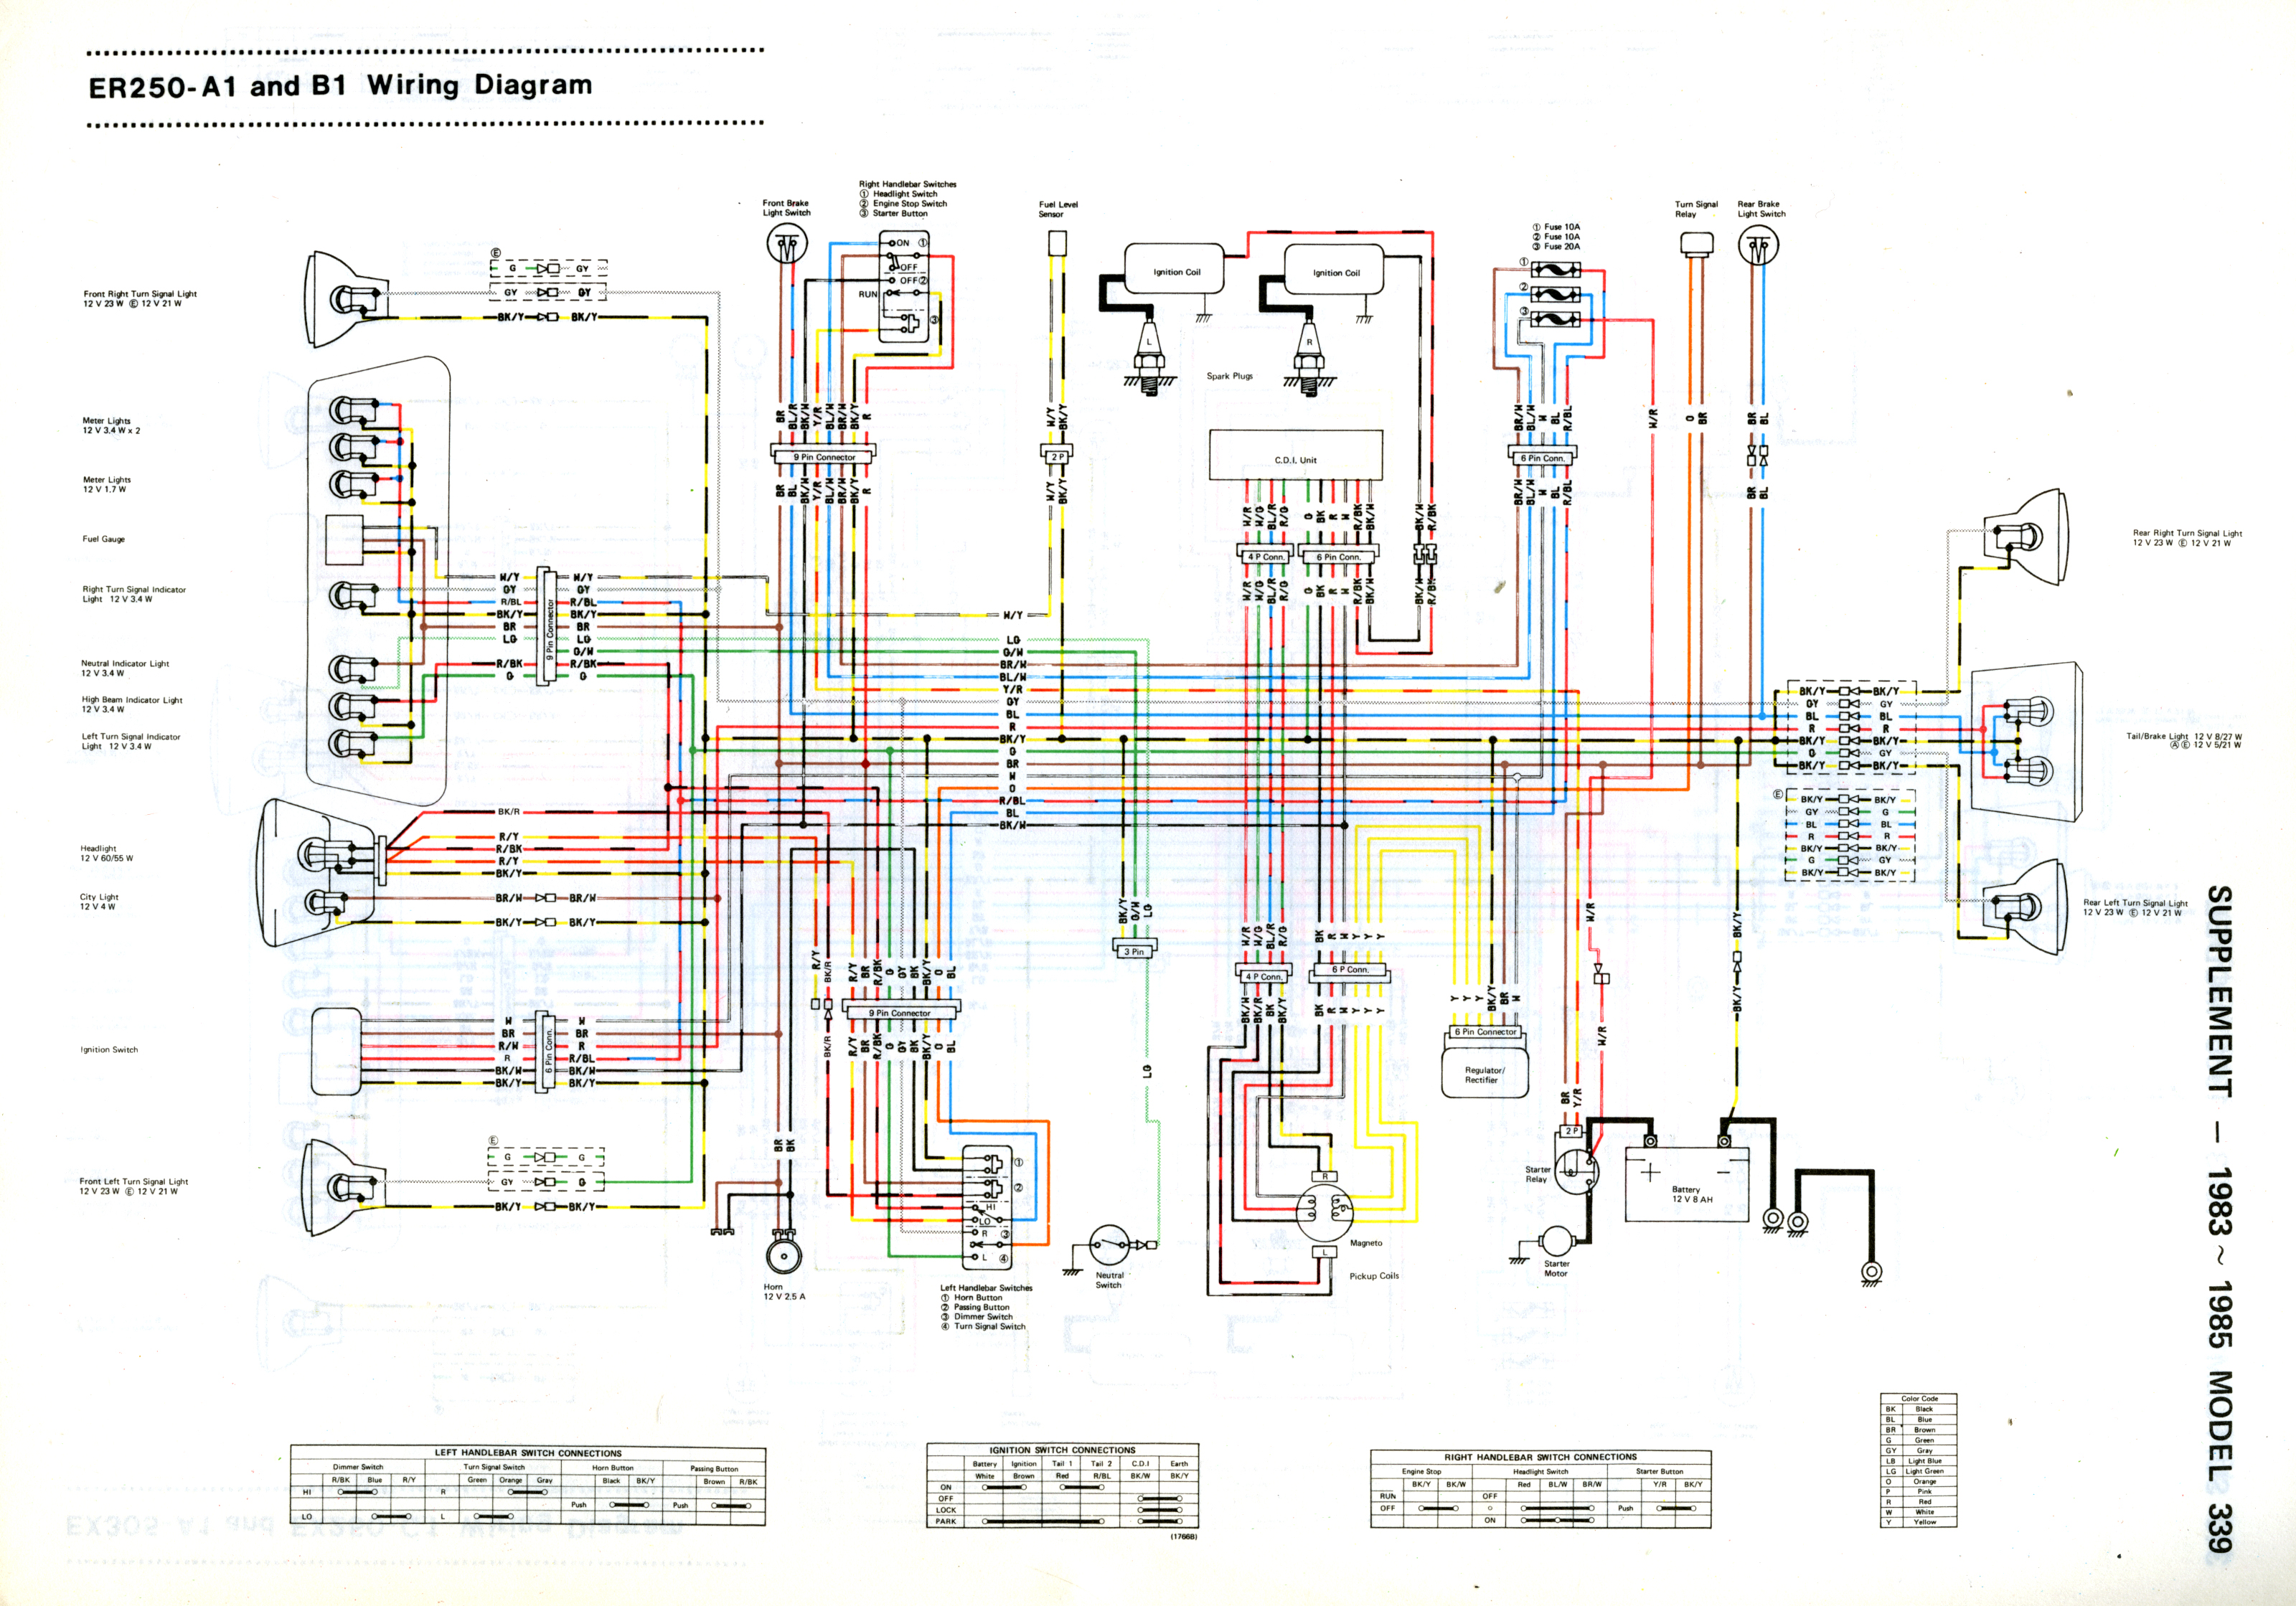 Kawasaki Z250 Wiring Diagram List Of Schematic Circuit Gpz 500 Z250service Rh Co Uk